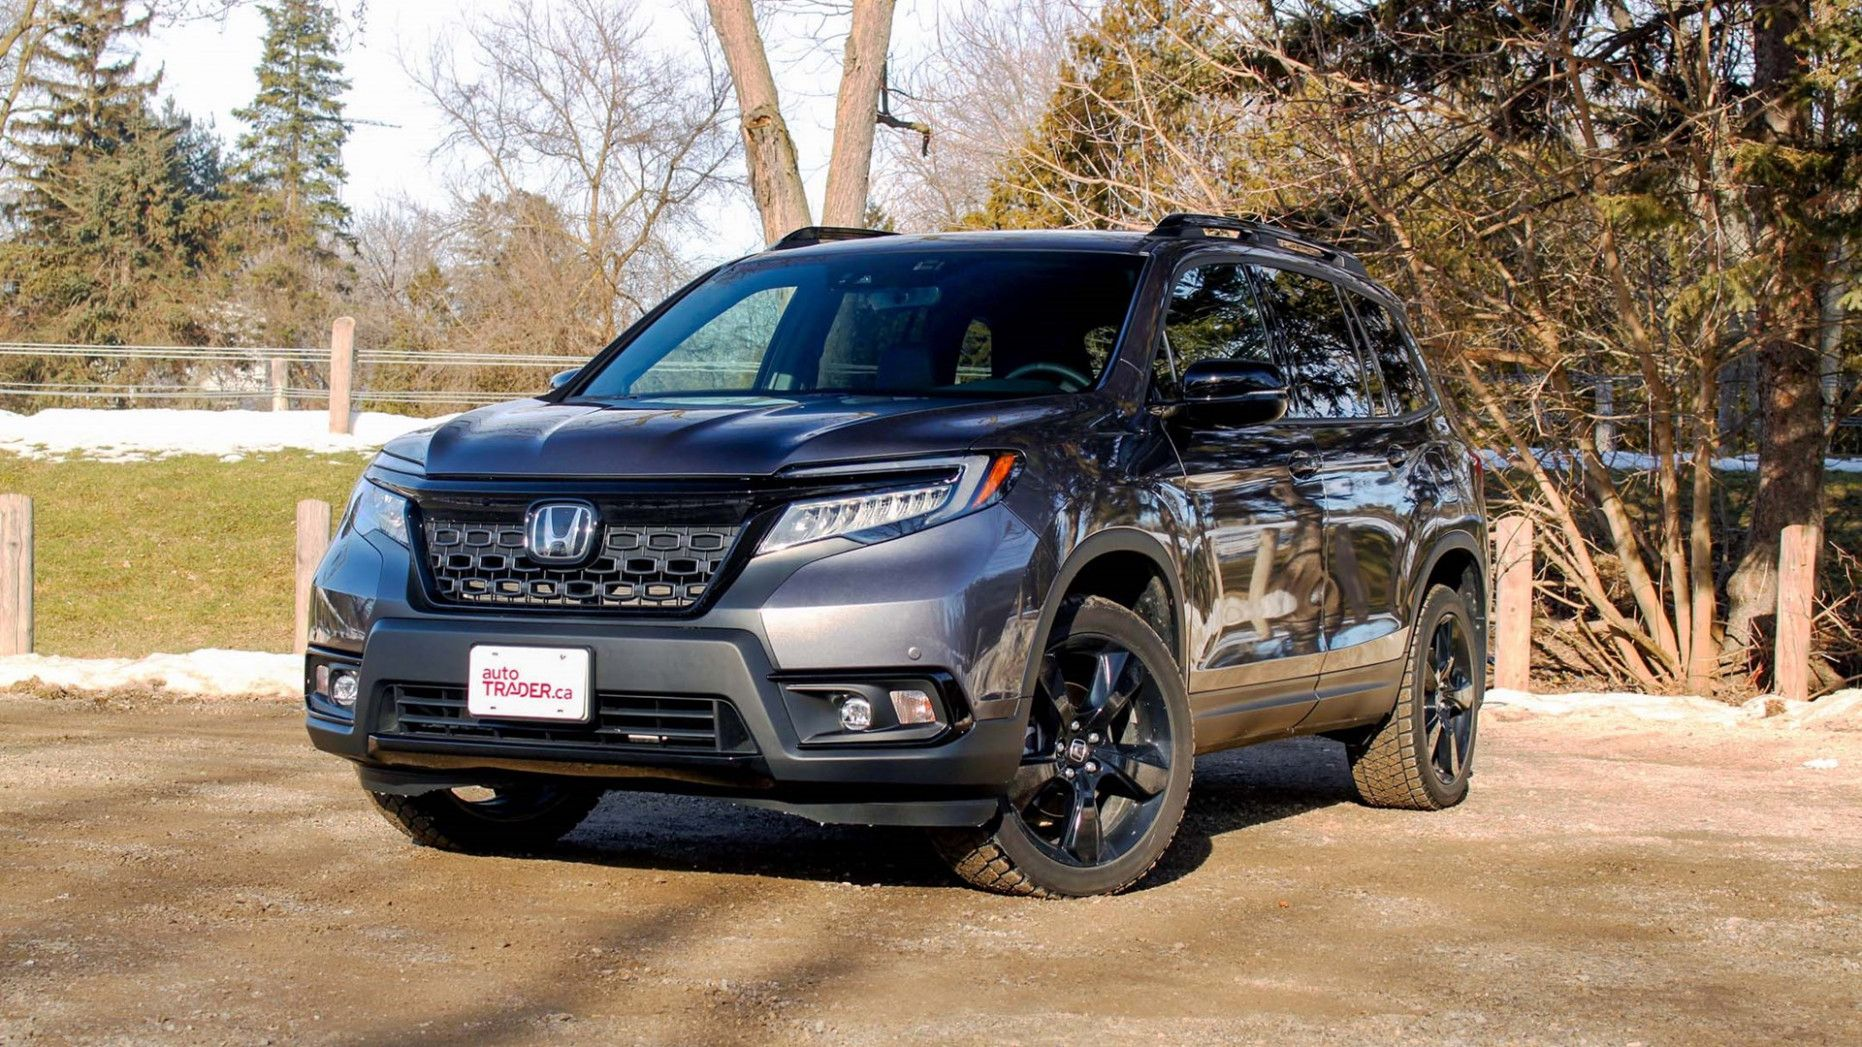 6 Image 2020 Honda Passport Reviews In 2020 Honda Passport Honda Image